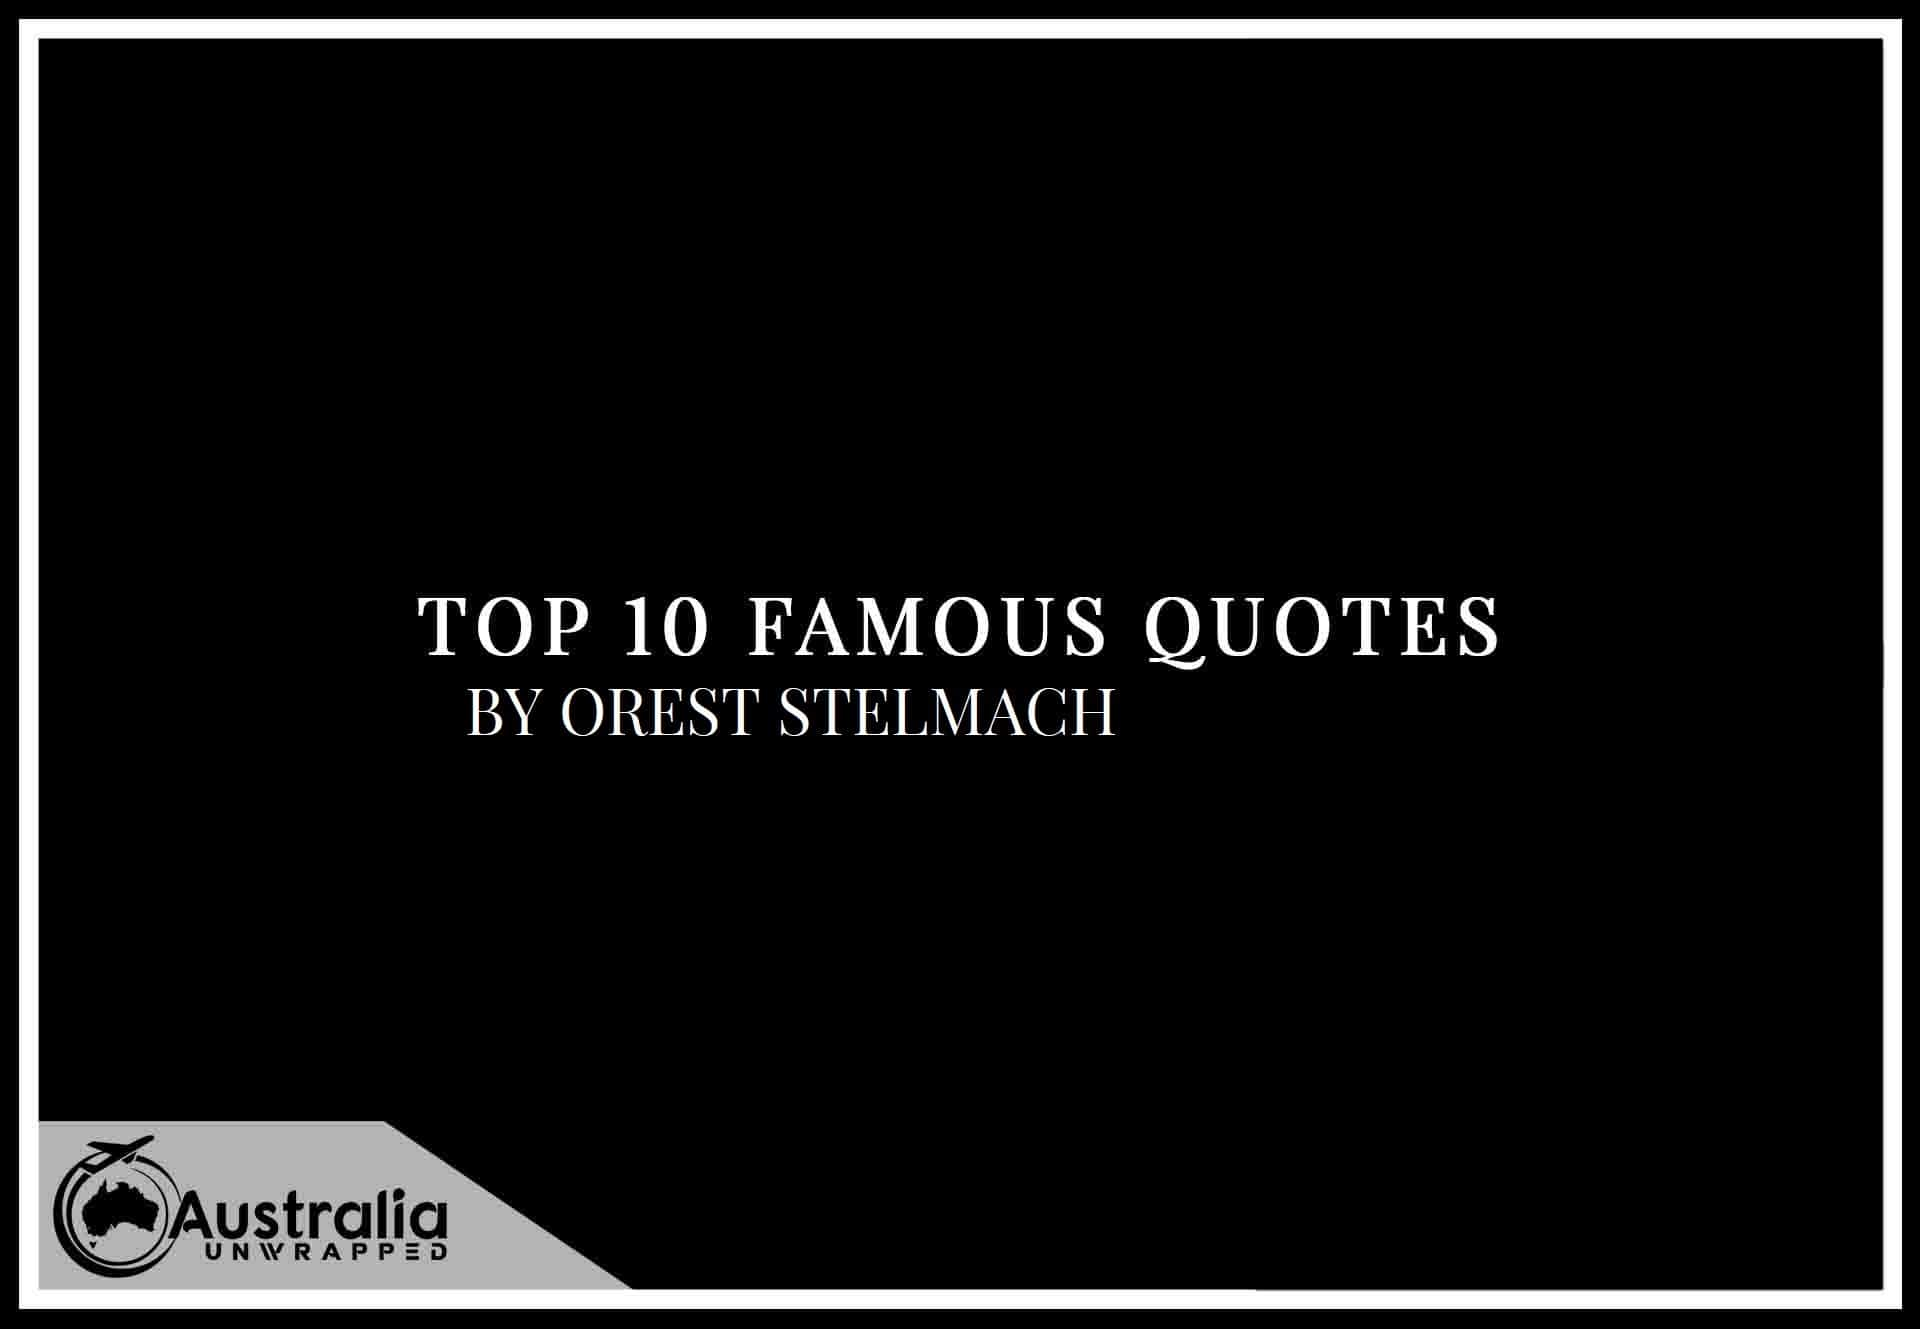 Top 10 Famous Quotes by Author Orest Stelmach